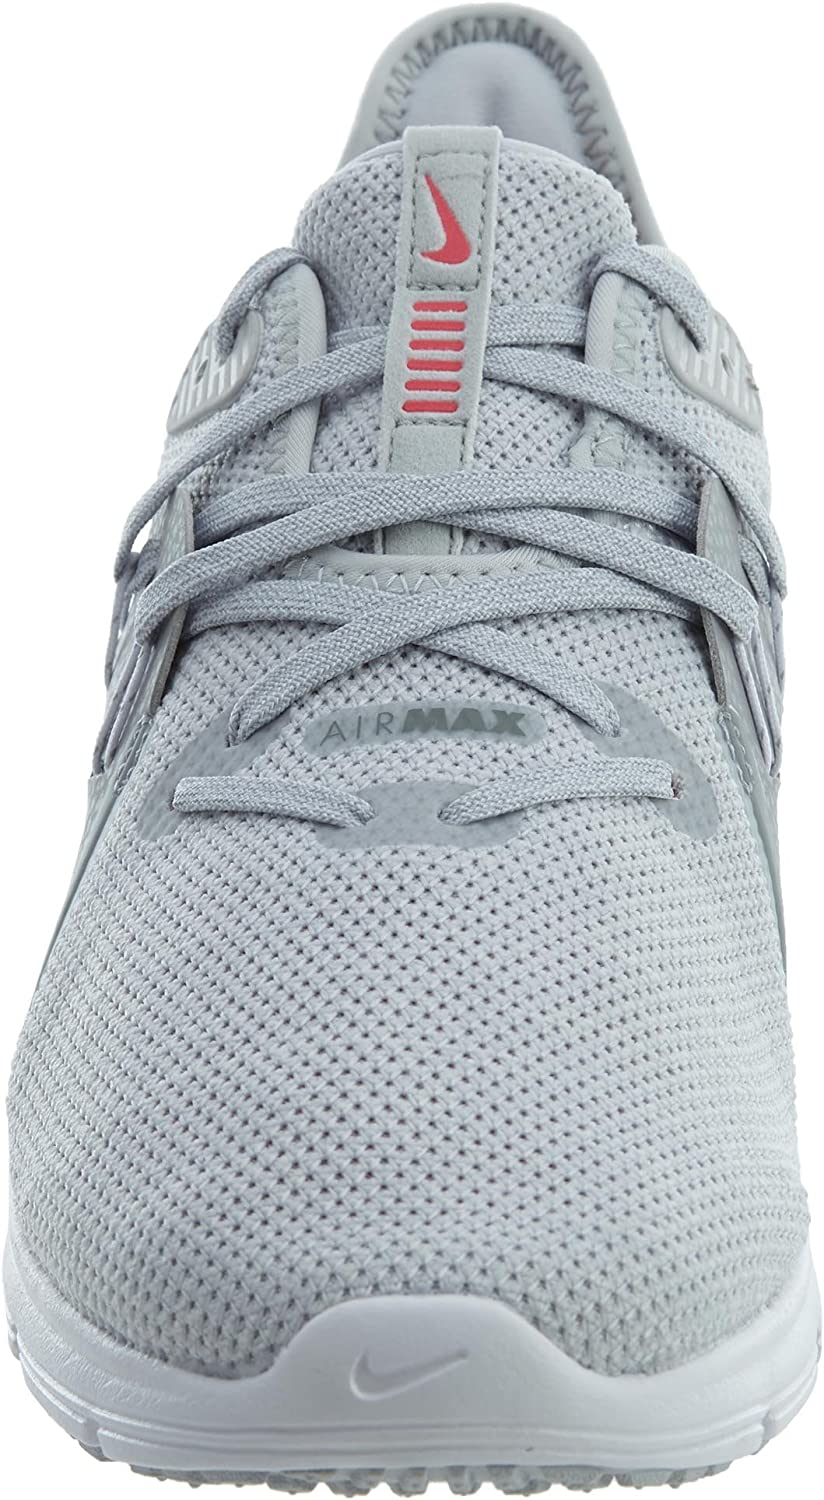 Nike Wmns Air Max Sequent 3, Scarpe Running Donna Grigio